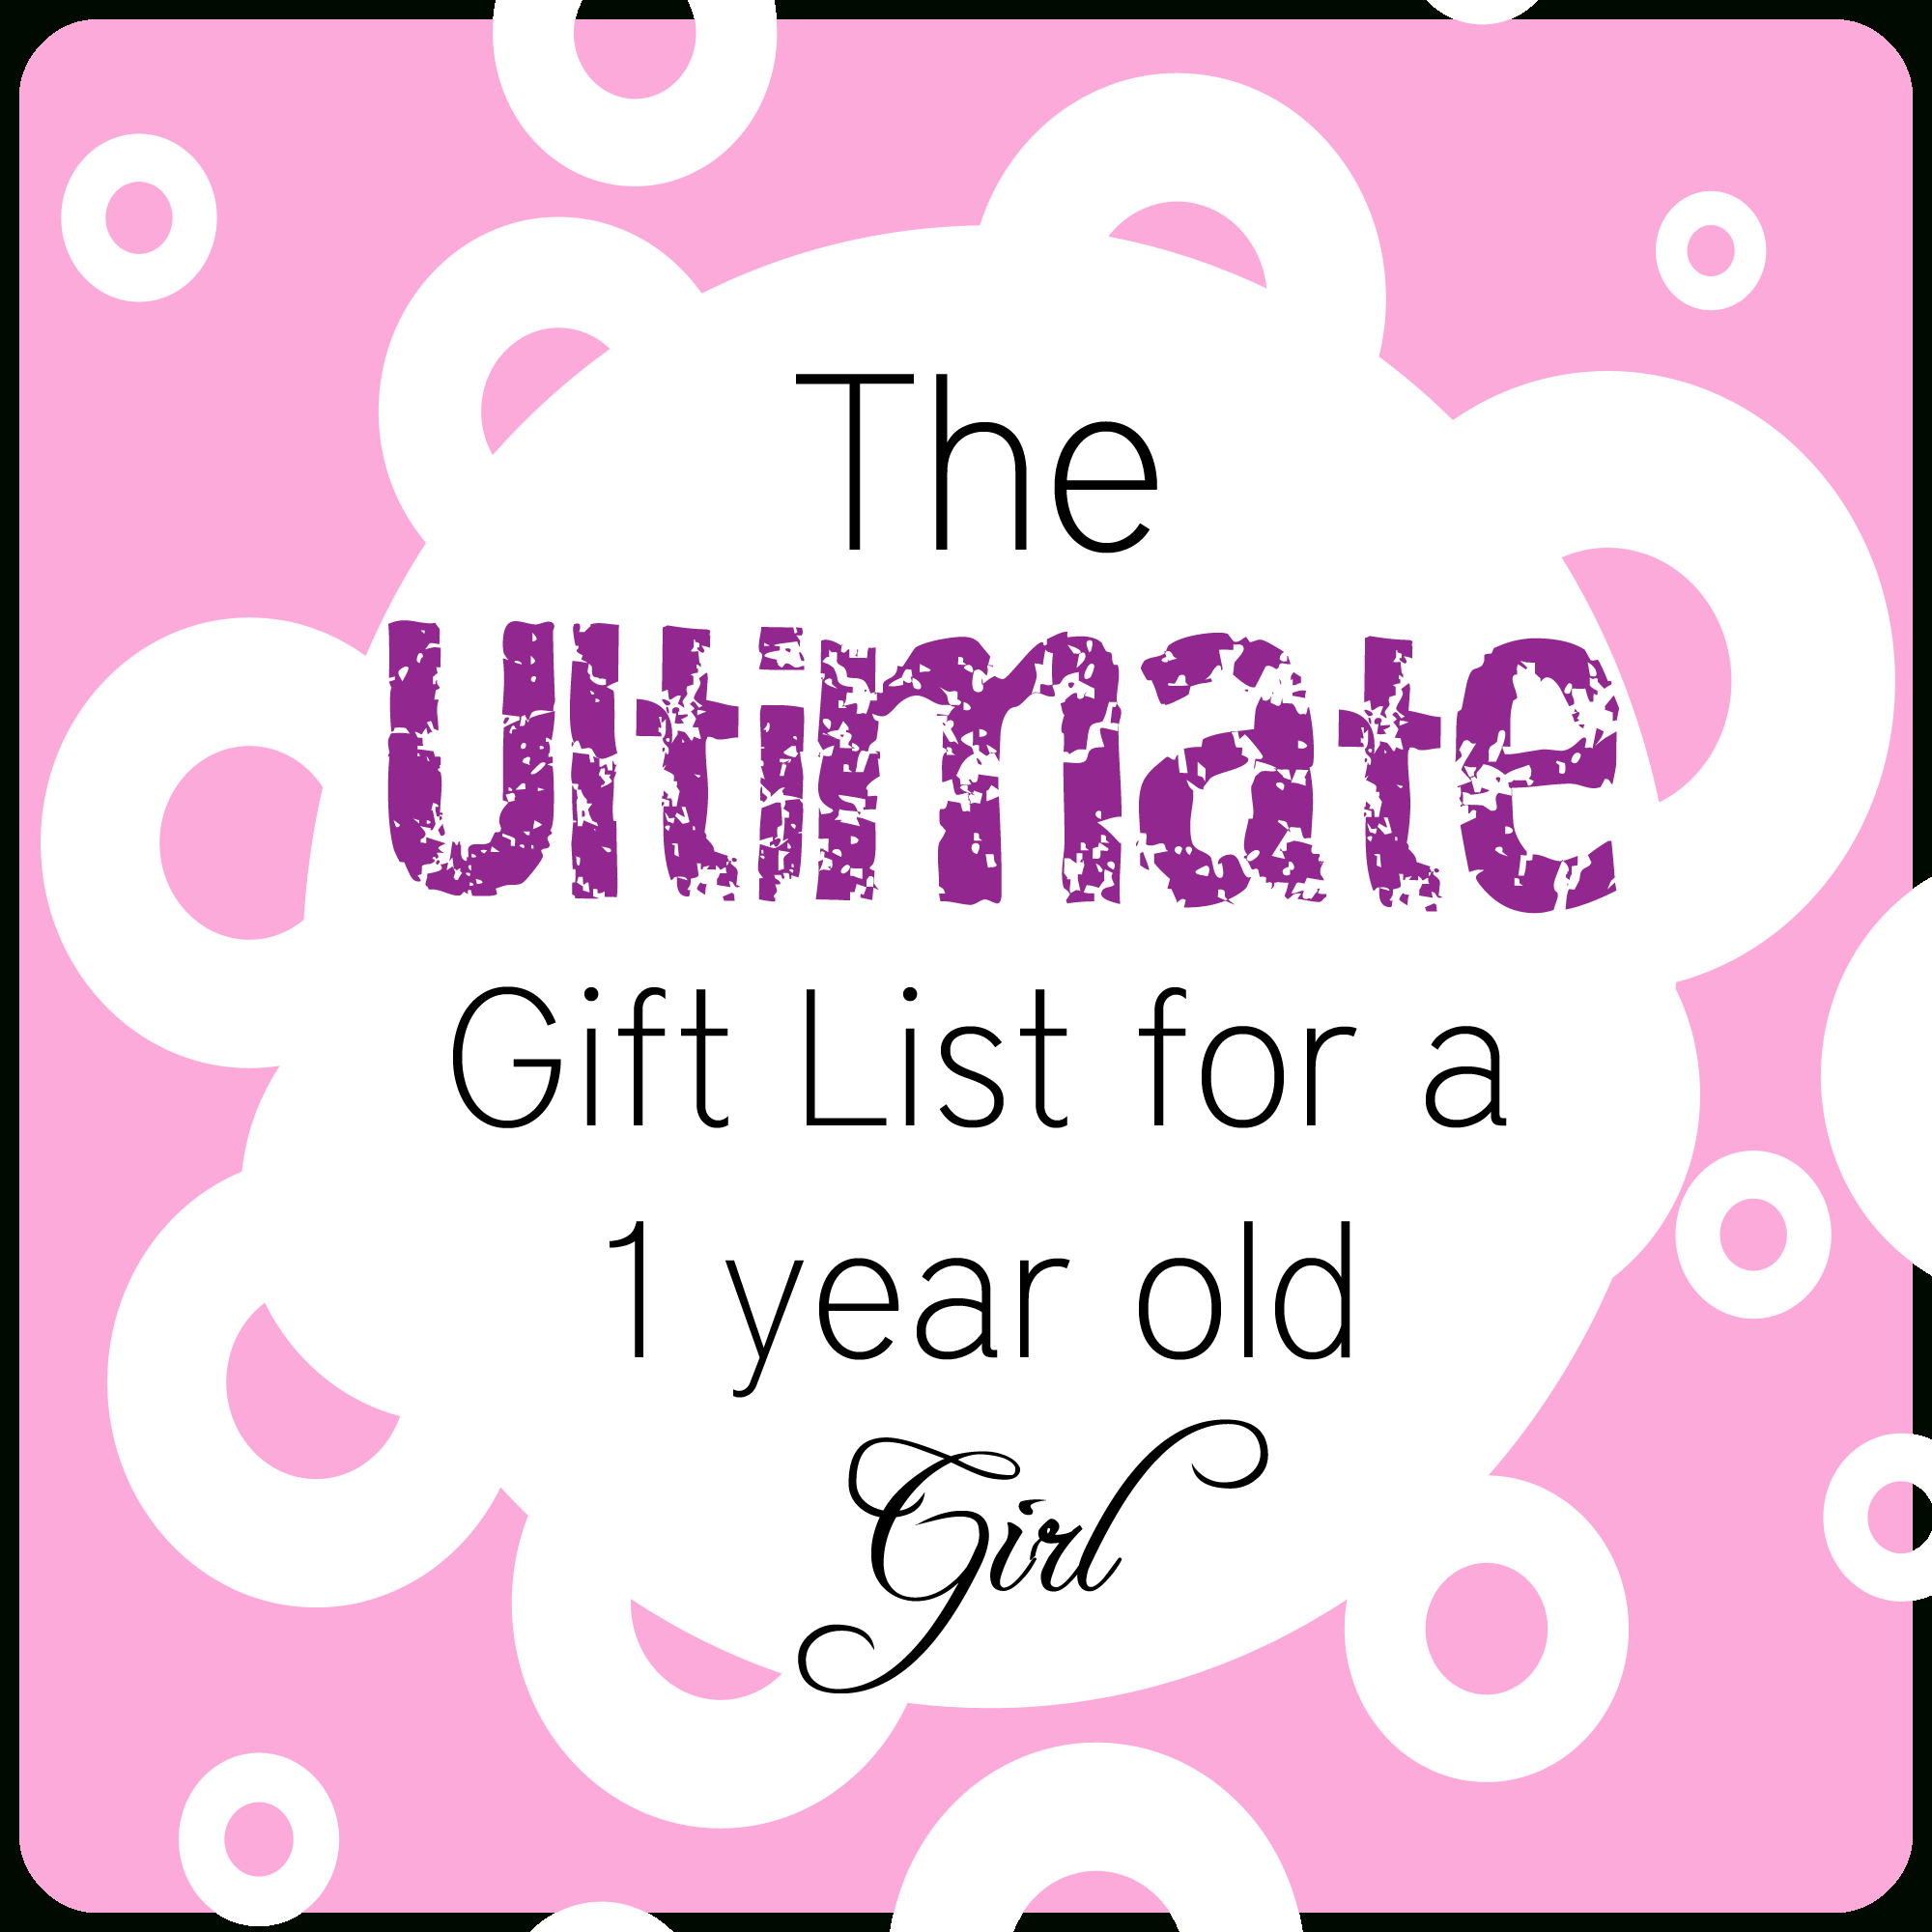 10 Lovable Gift Ideas For A 1 Year Old Girl best gifts for a 1 year old girl e280a2 the pinning mama 3 2020